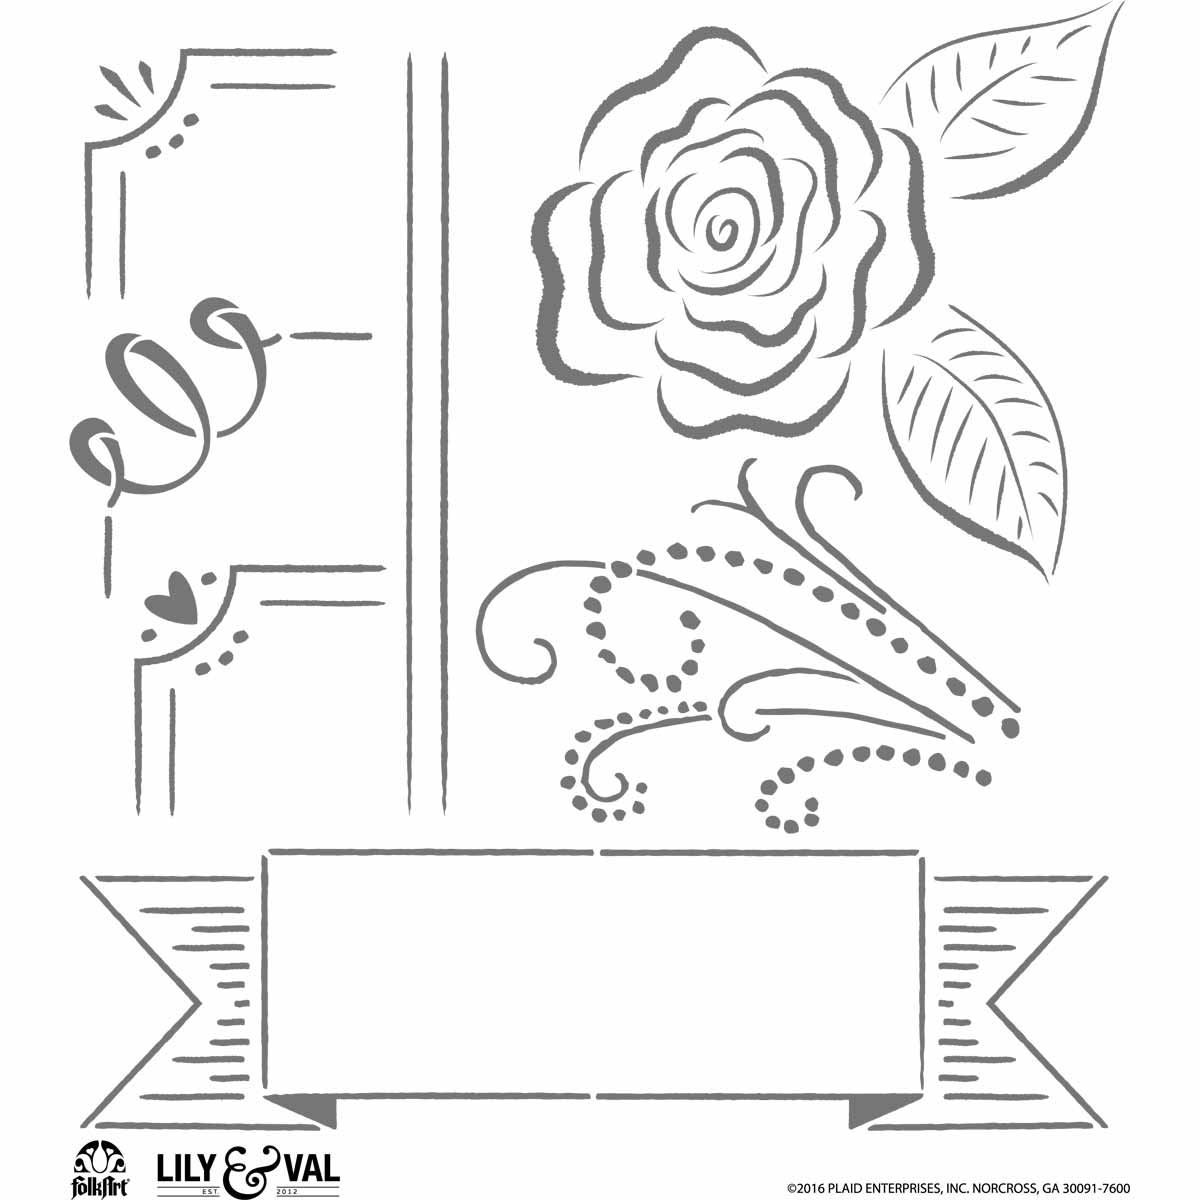 FolkArt ® Lily & Val™ Stencils - Variety Packs - Welcome - 13251